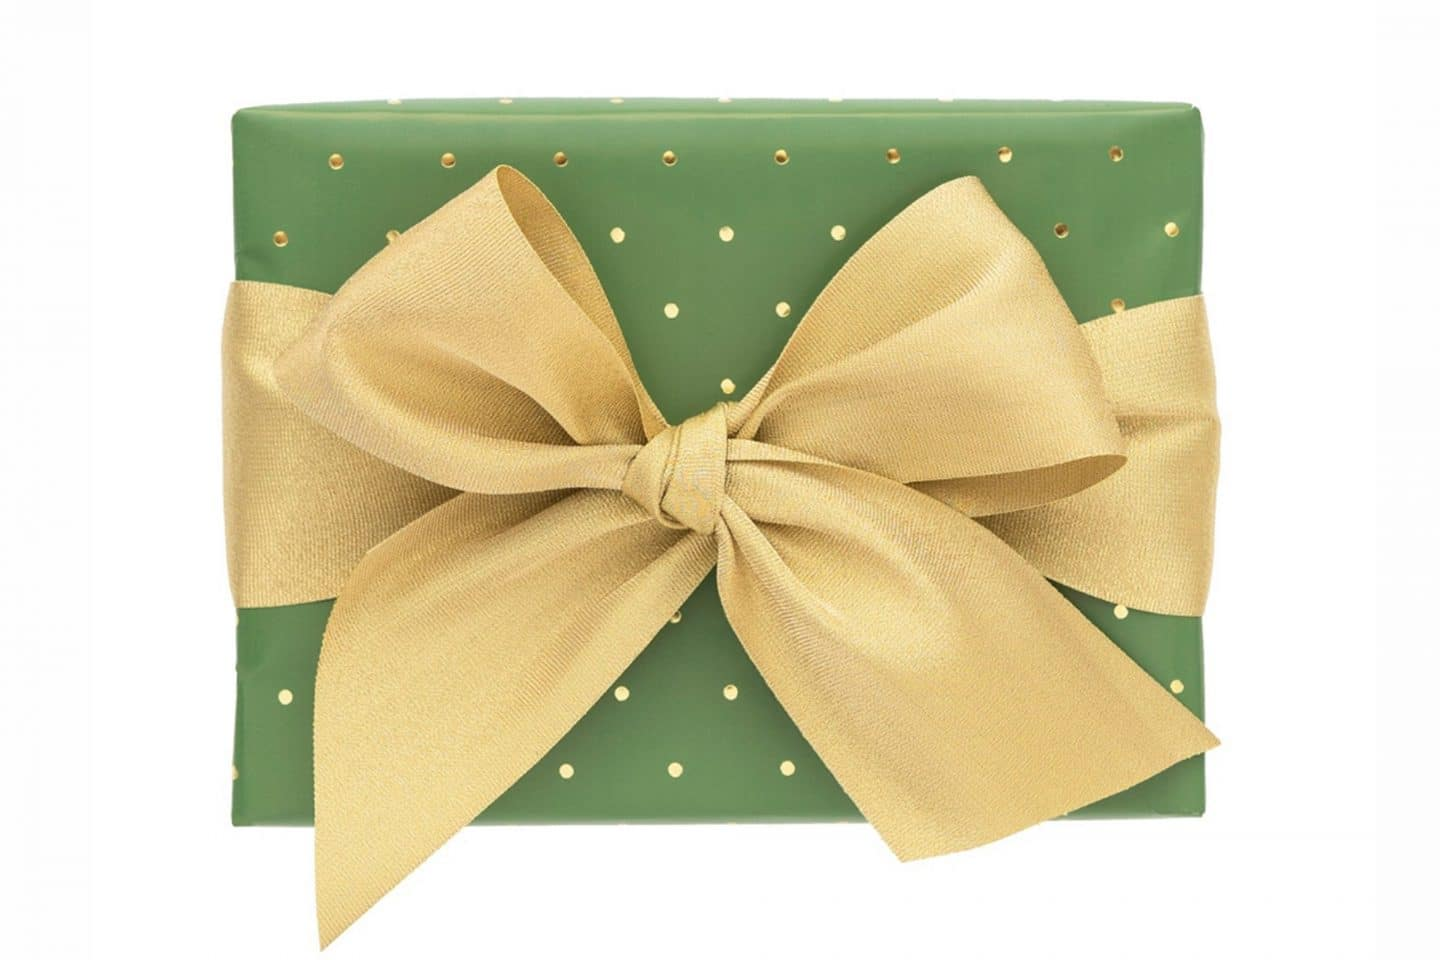 7 Gifts for Men – 2018 Gift Guide